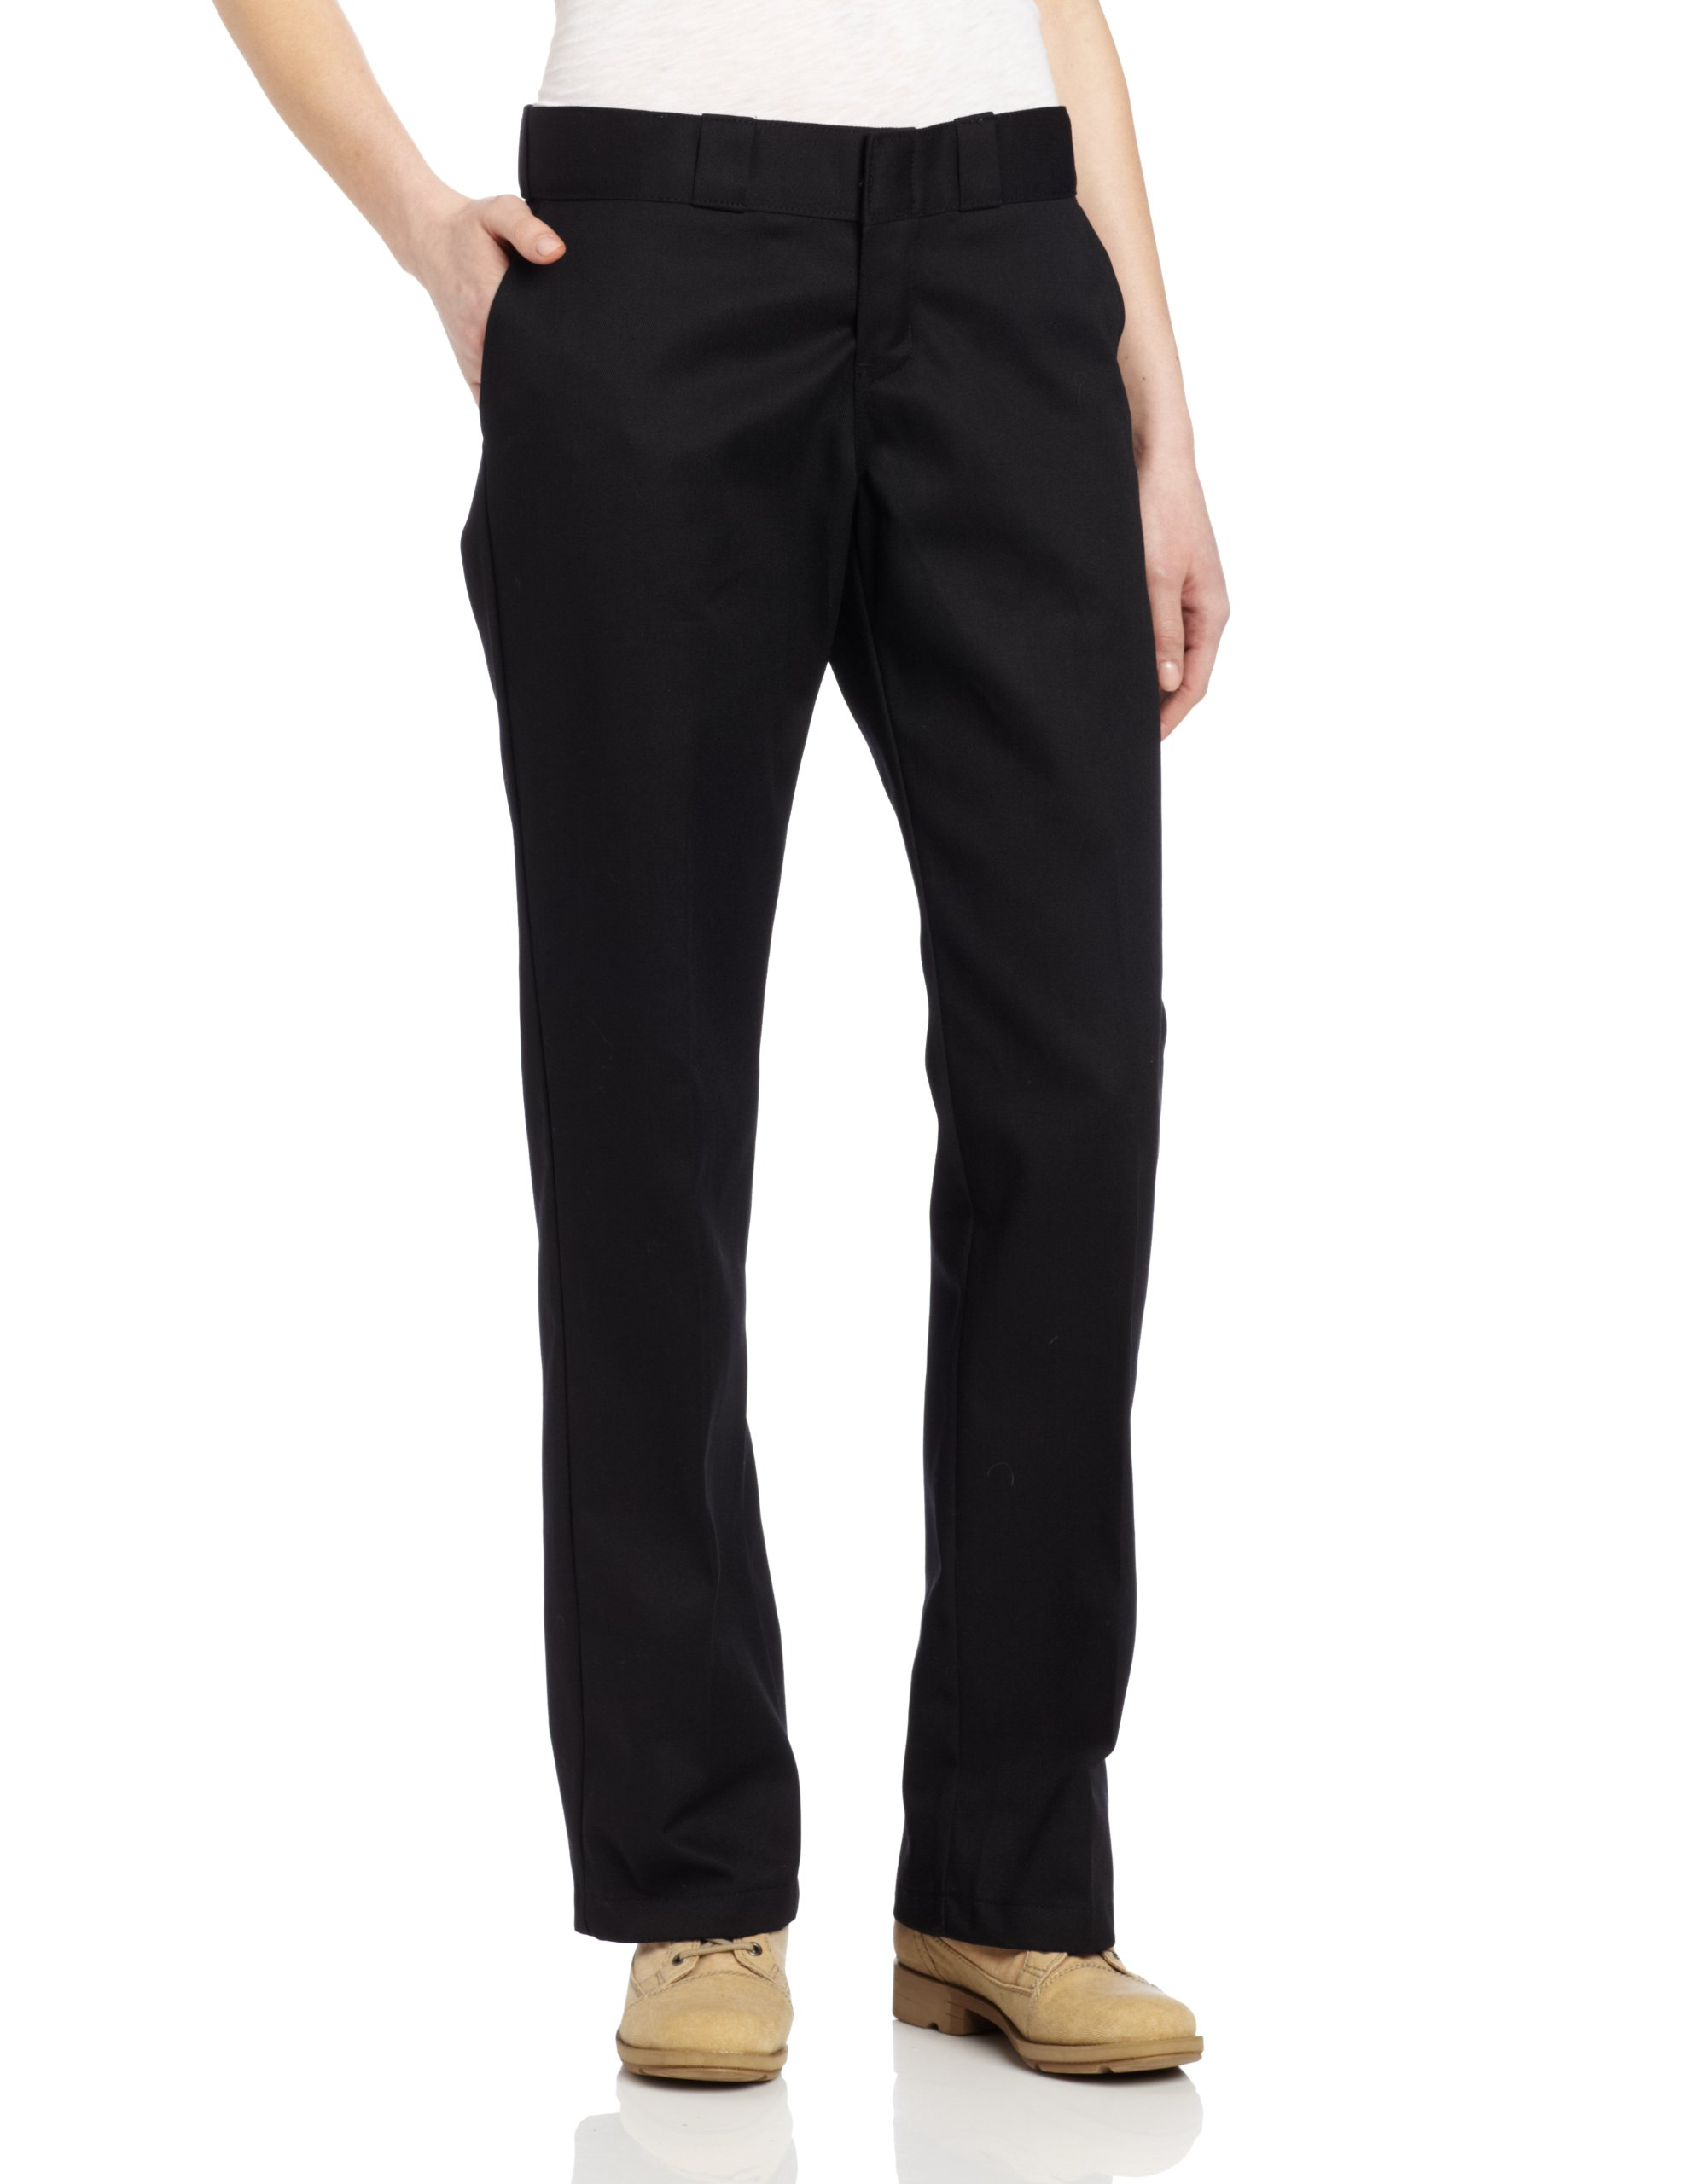 Dickies Women's Original Work Pant with Wrinkle And Stain Resistance,Black,8 Petite